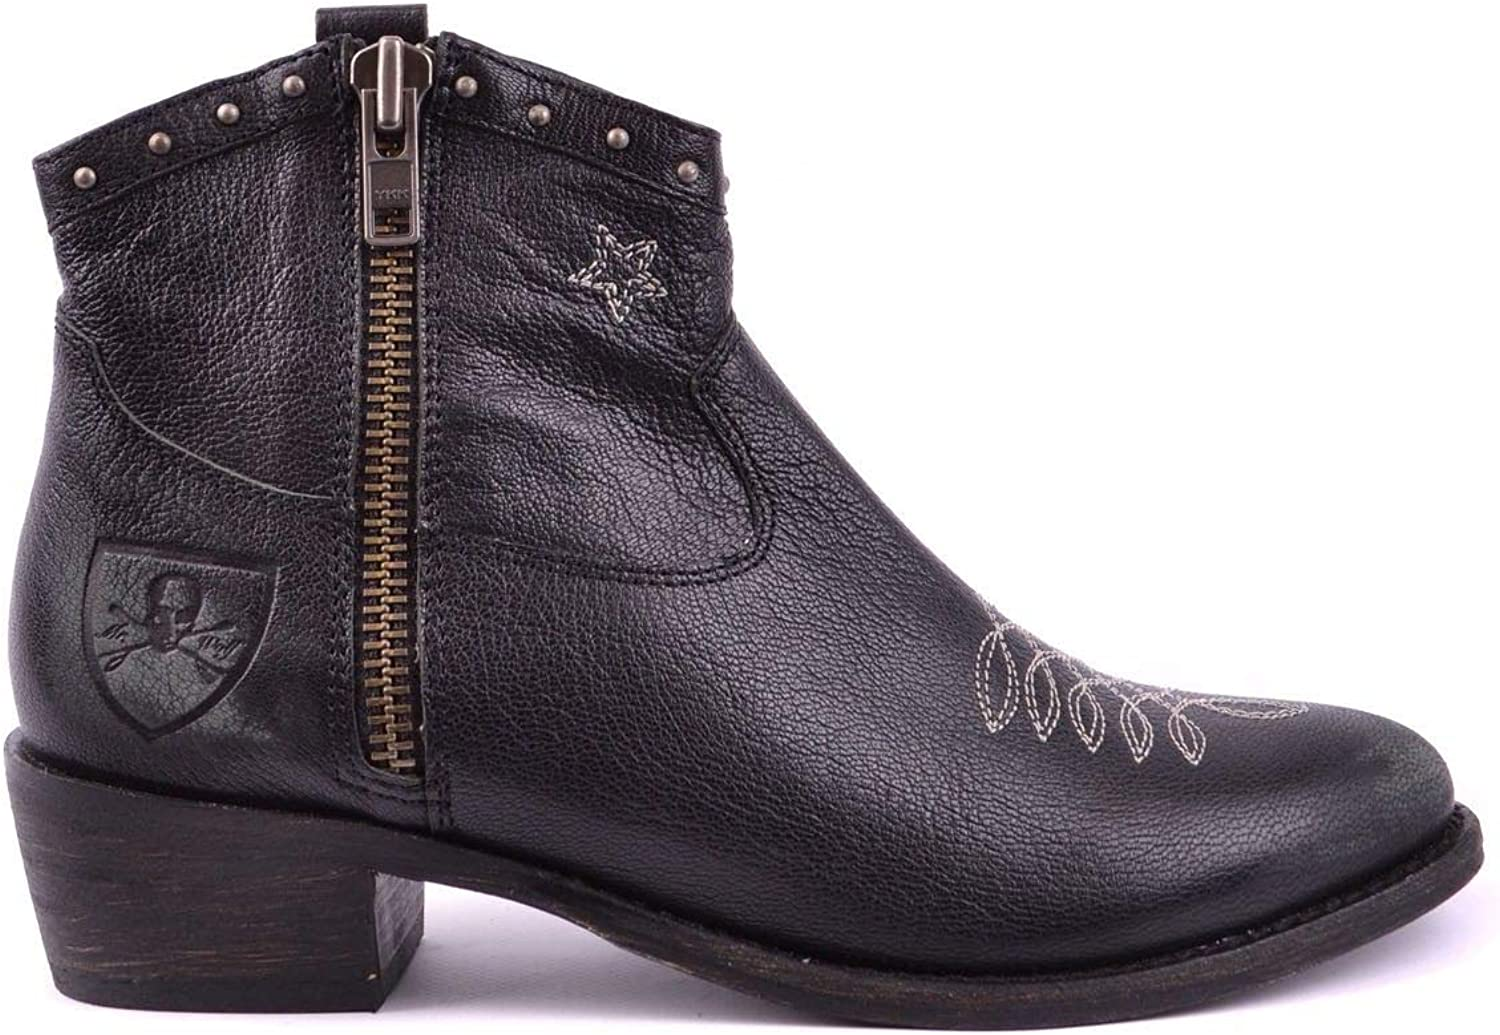 MR. WOLF Women's MCBI17606 Black Leather Ankle Boots